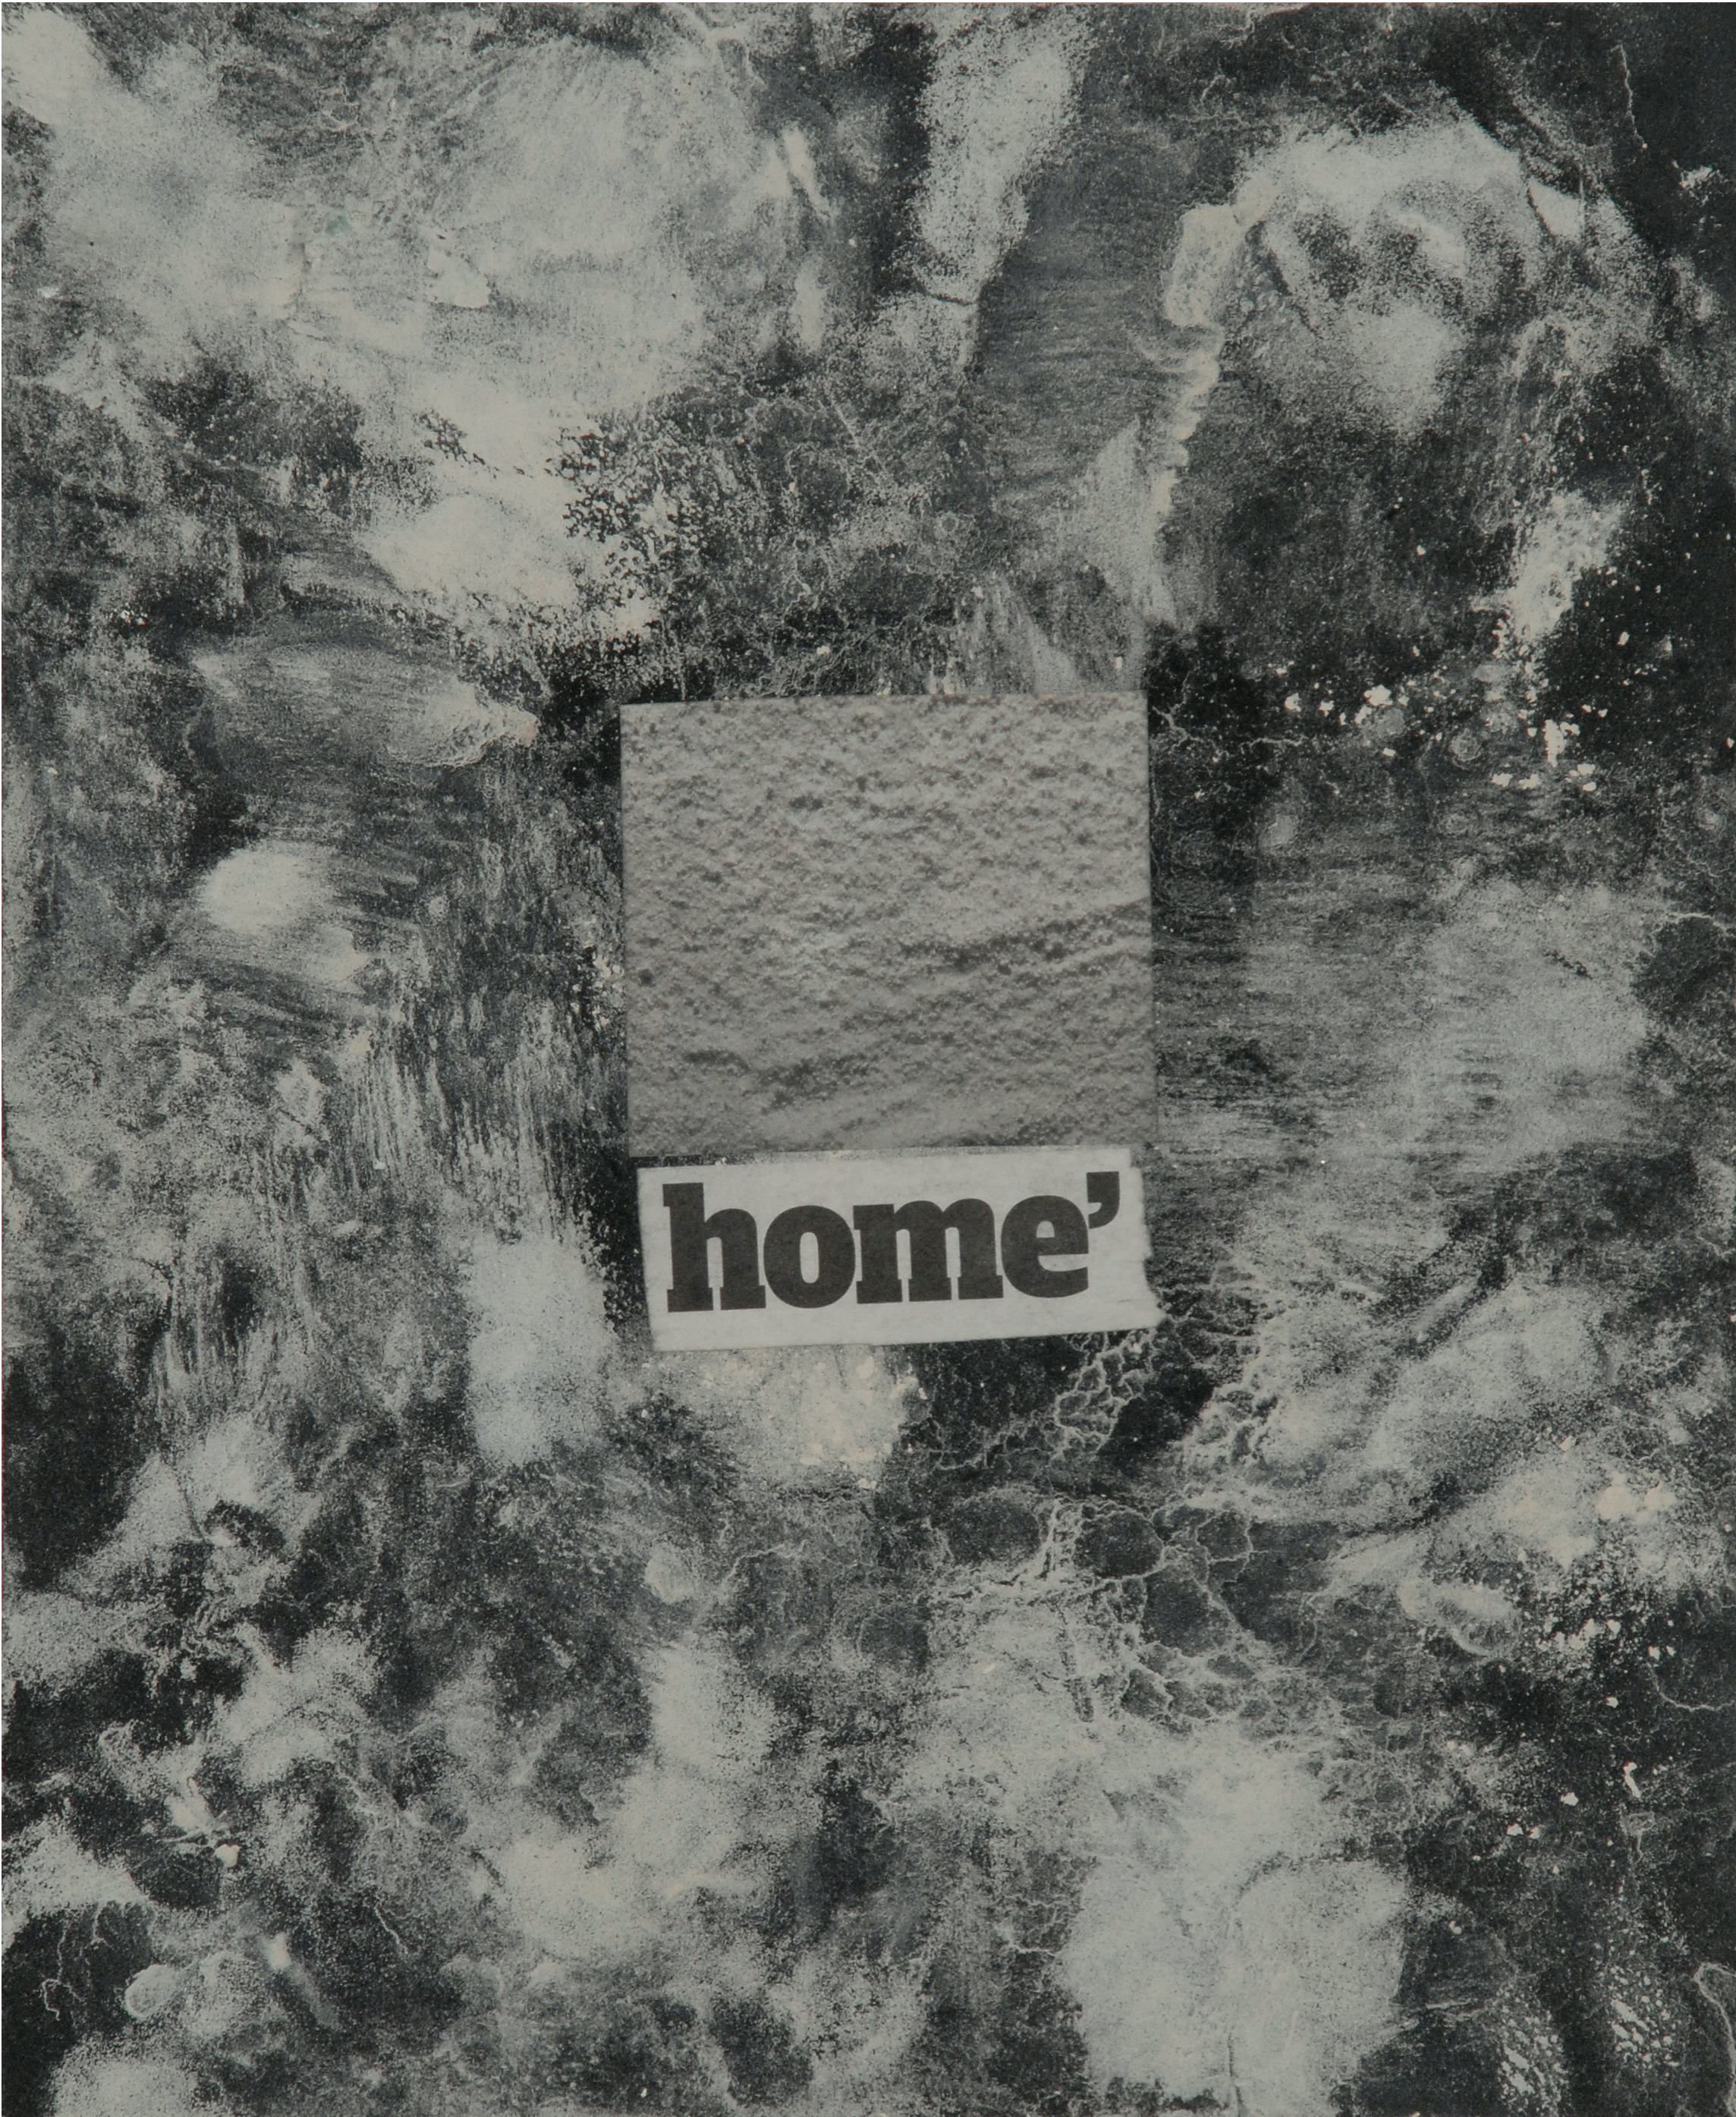 Kevin Hutcheson, Home, 2009